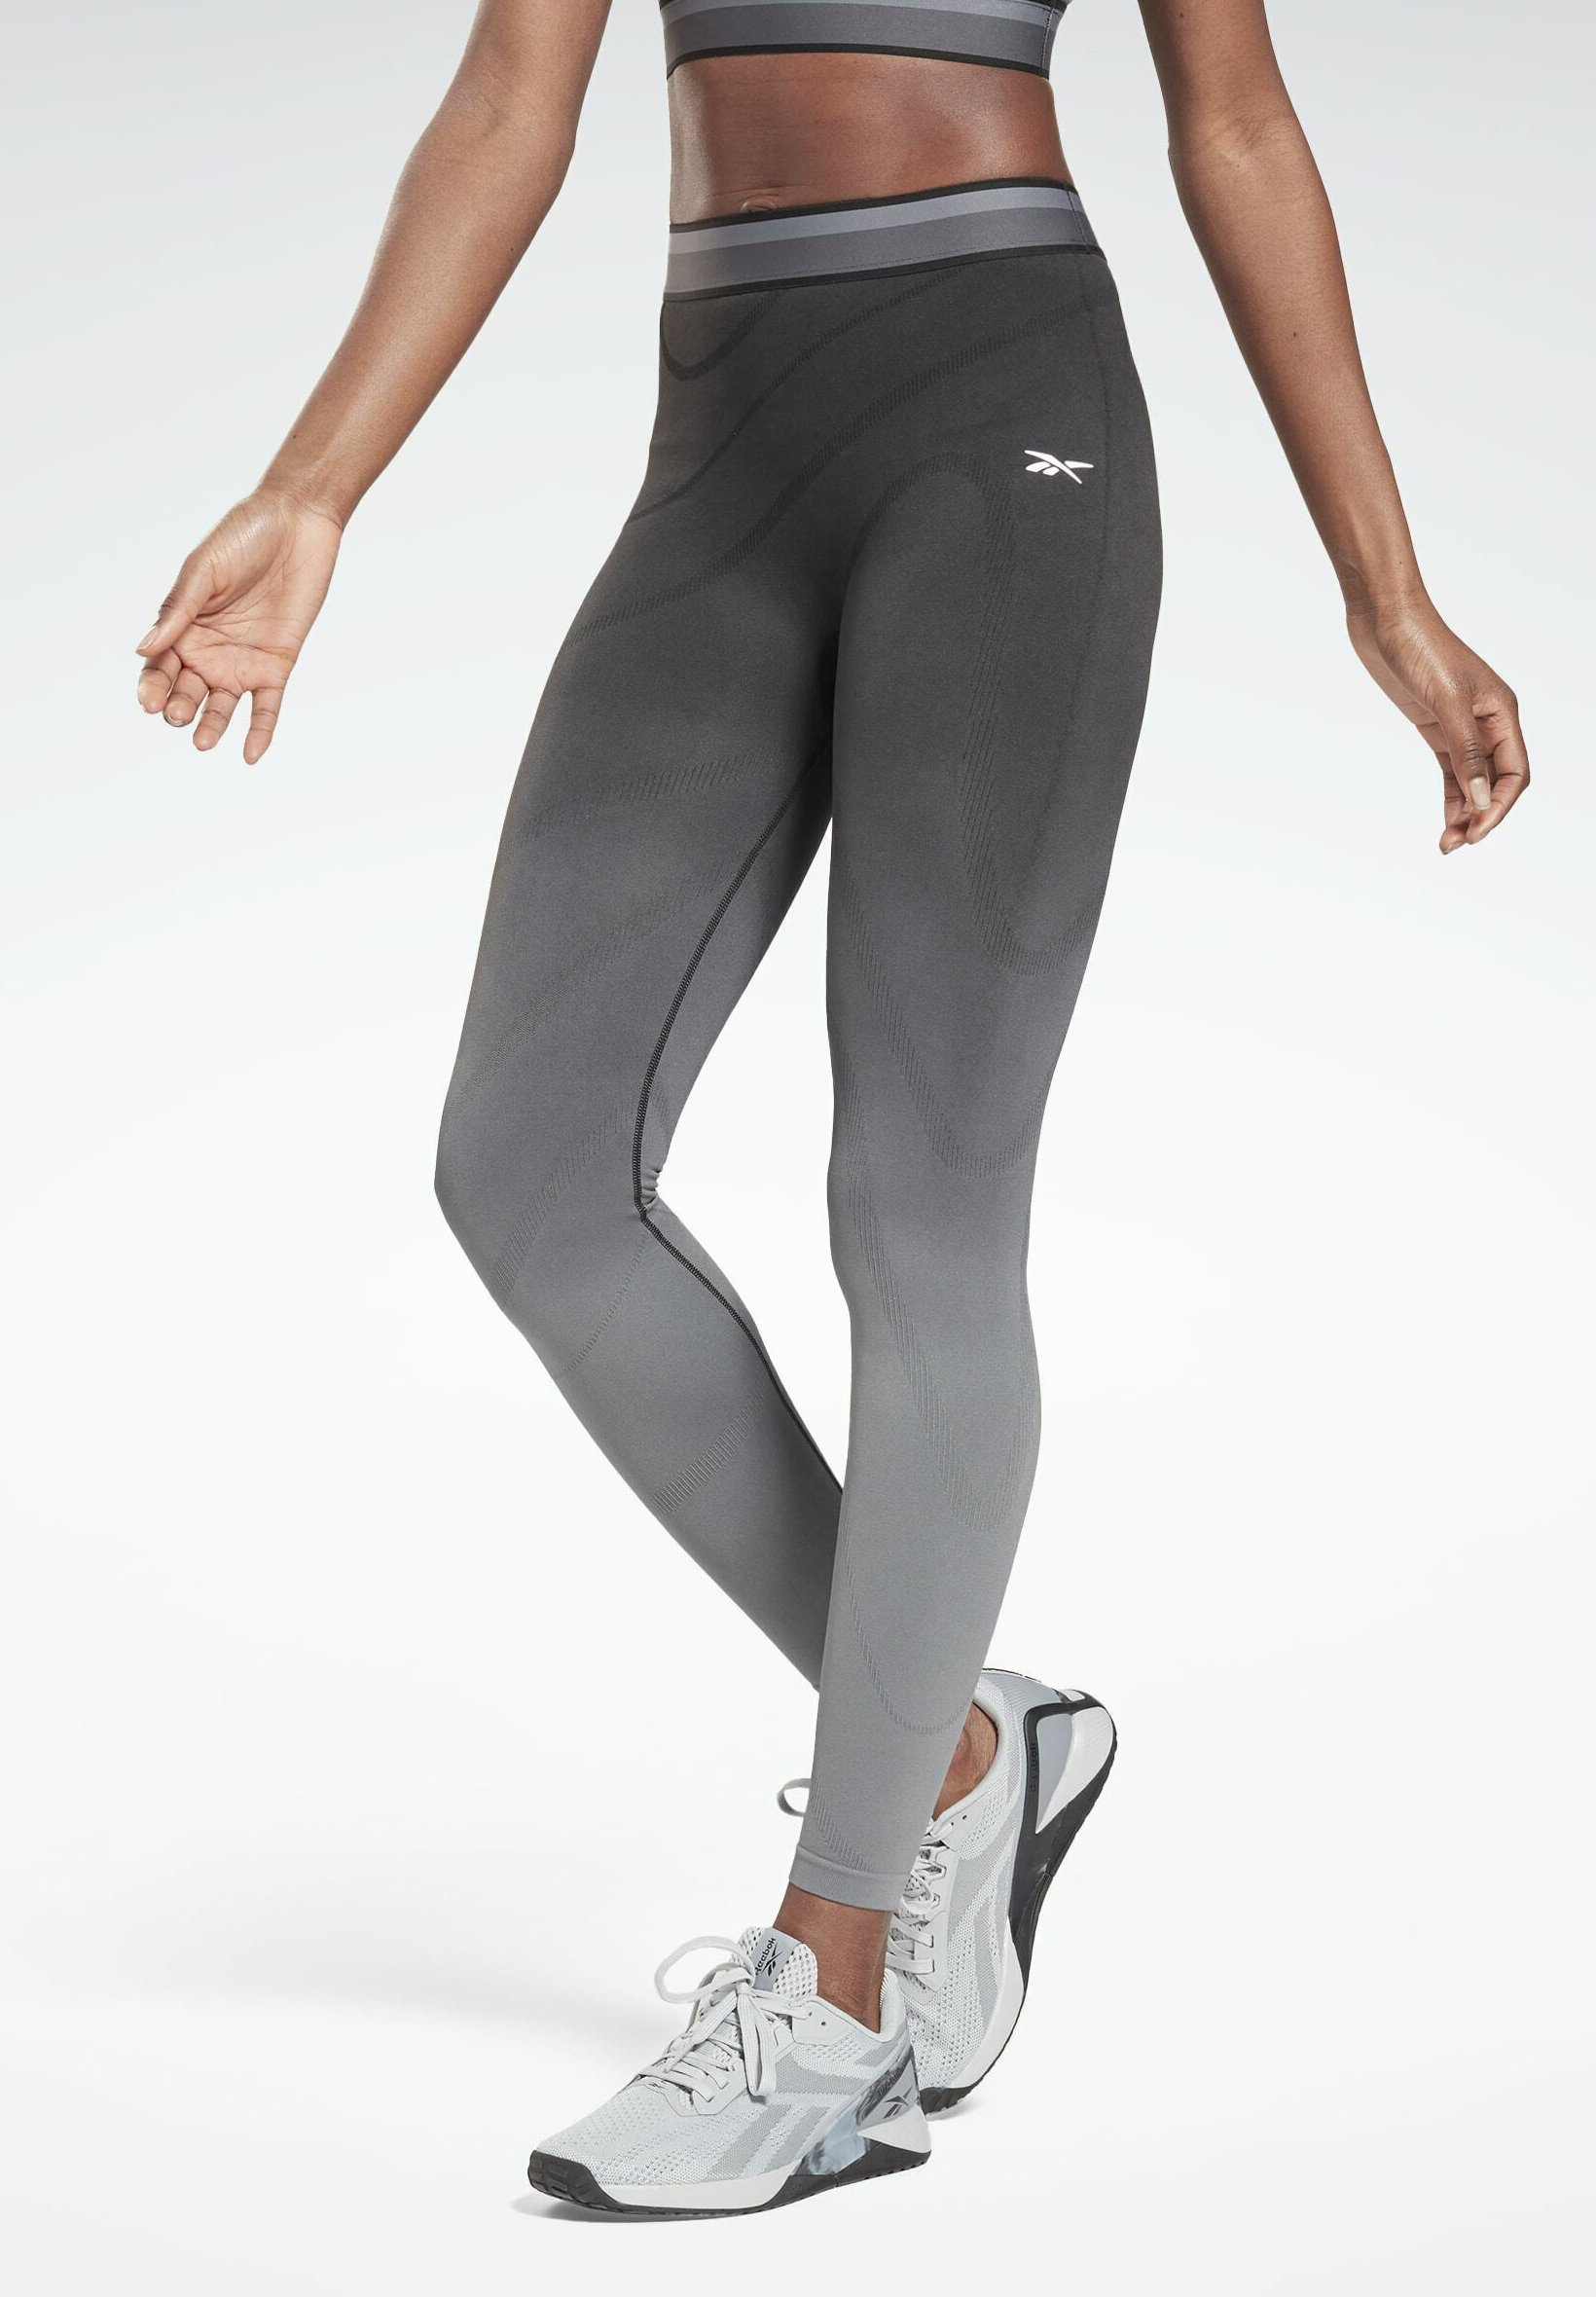 Donna TRAINING WORKOUT UNITED BY FITNESS SEAMLESS HIGH WAISTED - Collant